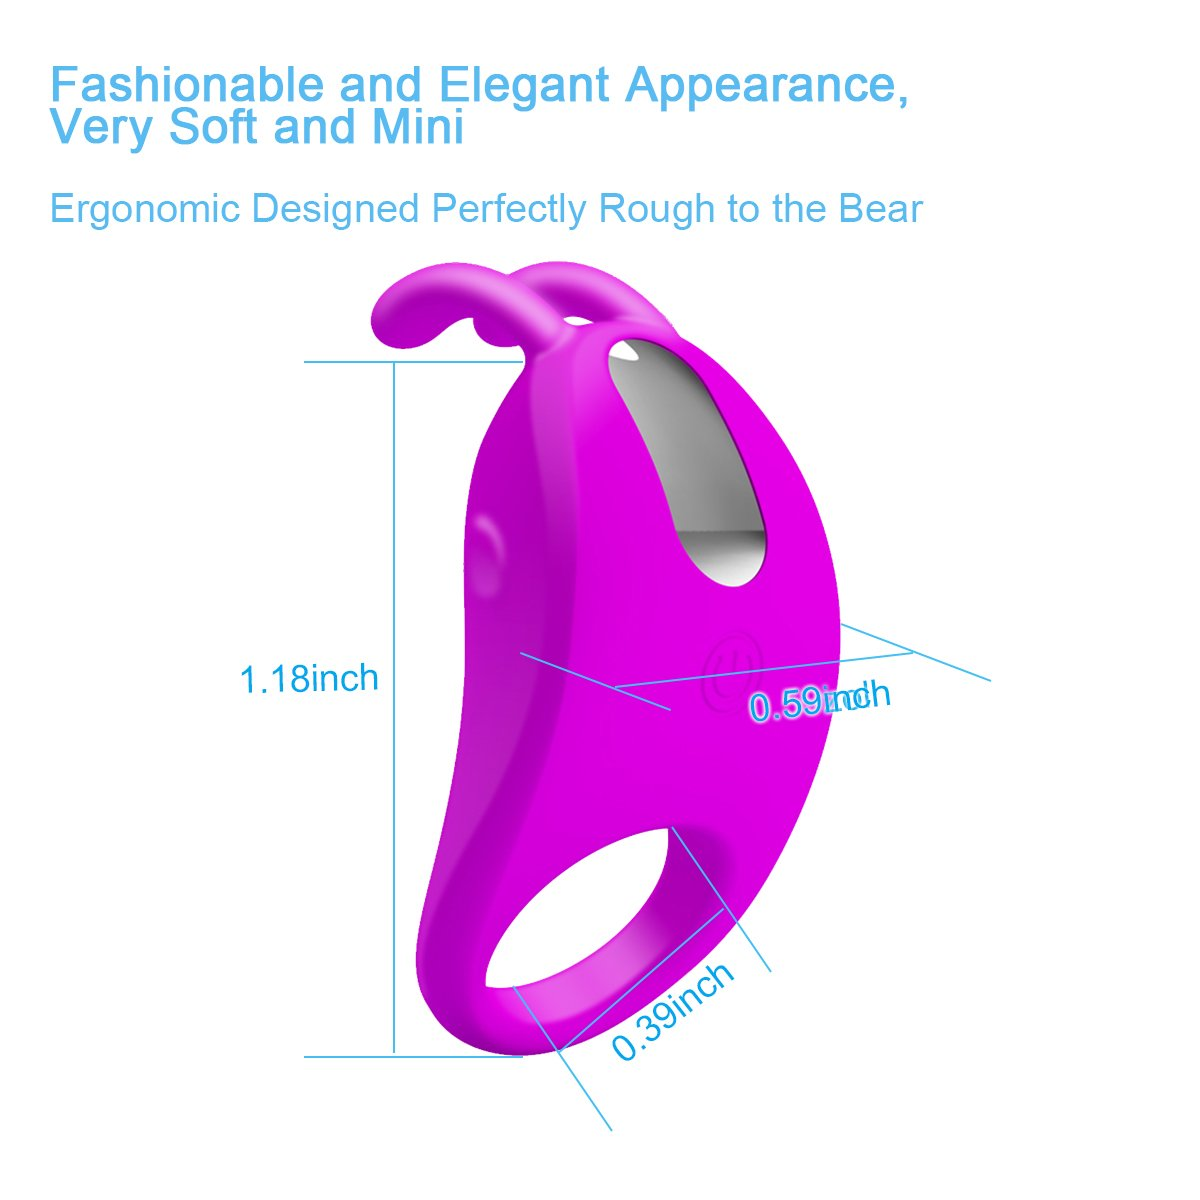 Silicone Vibrating Ring Rabbit Vibrator Cordless Rechargeable Wand Massager (Purple)